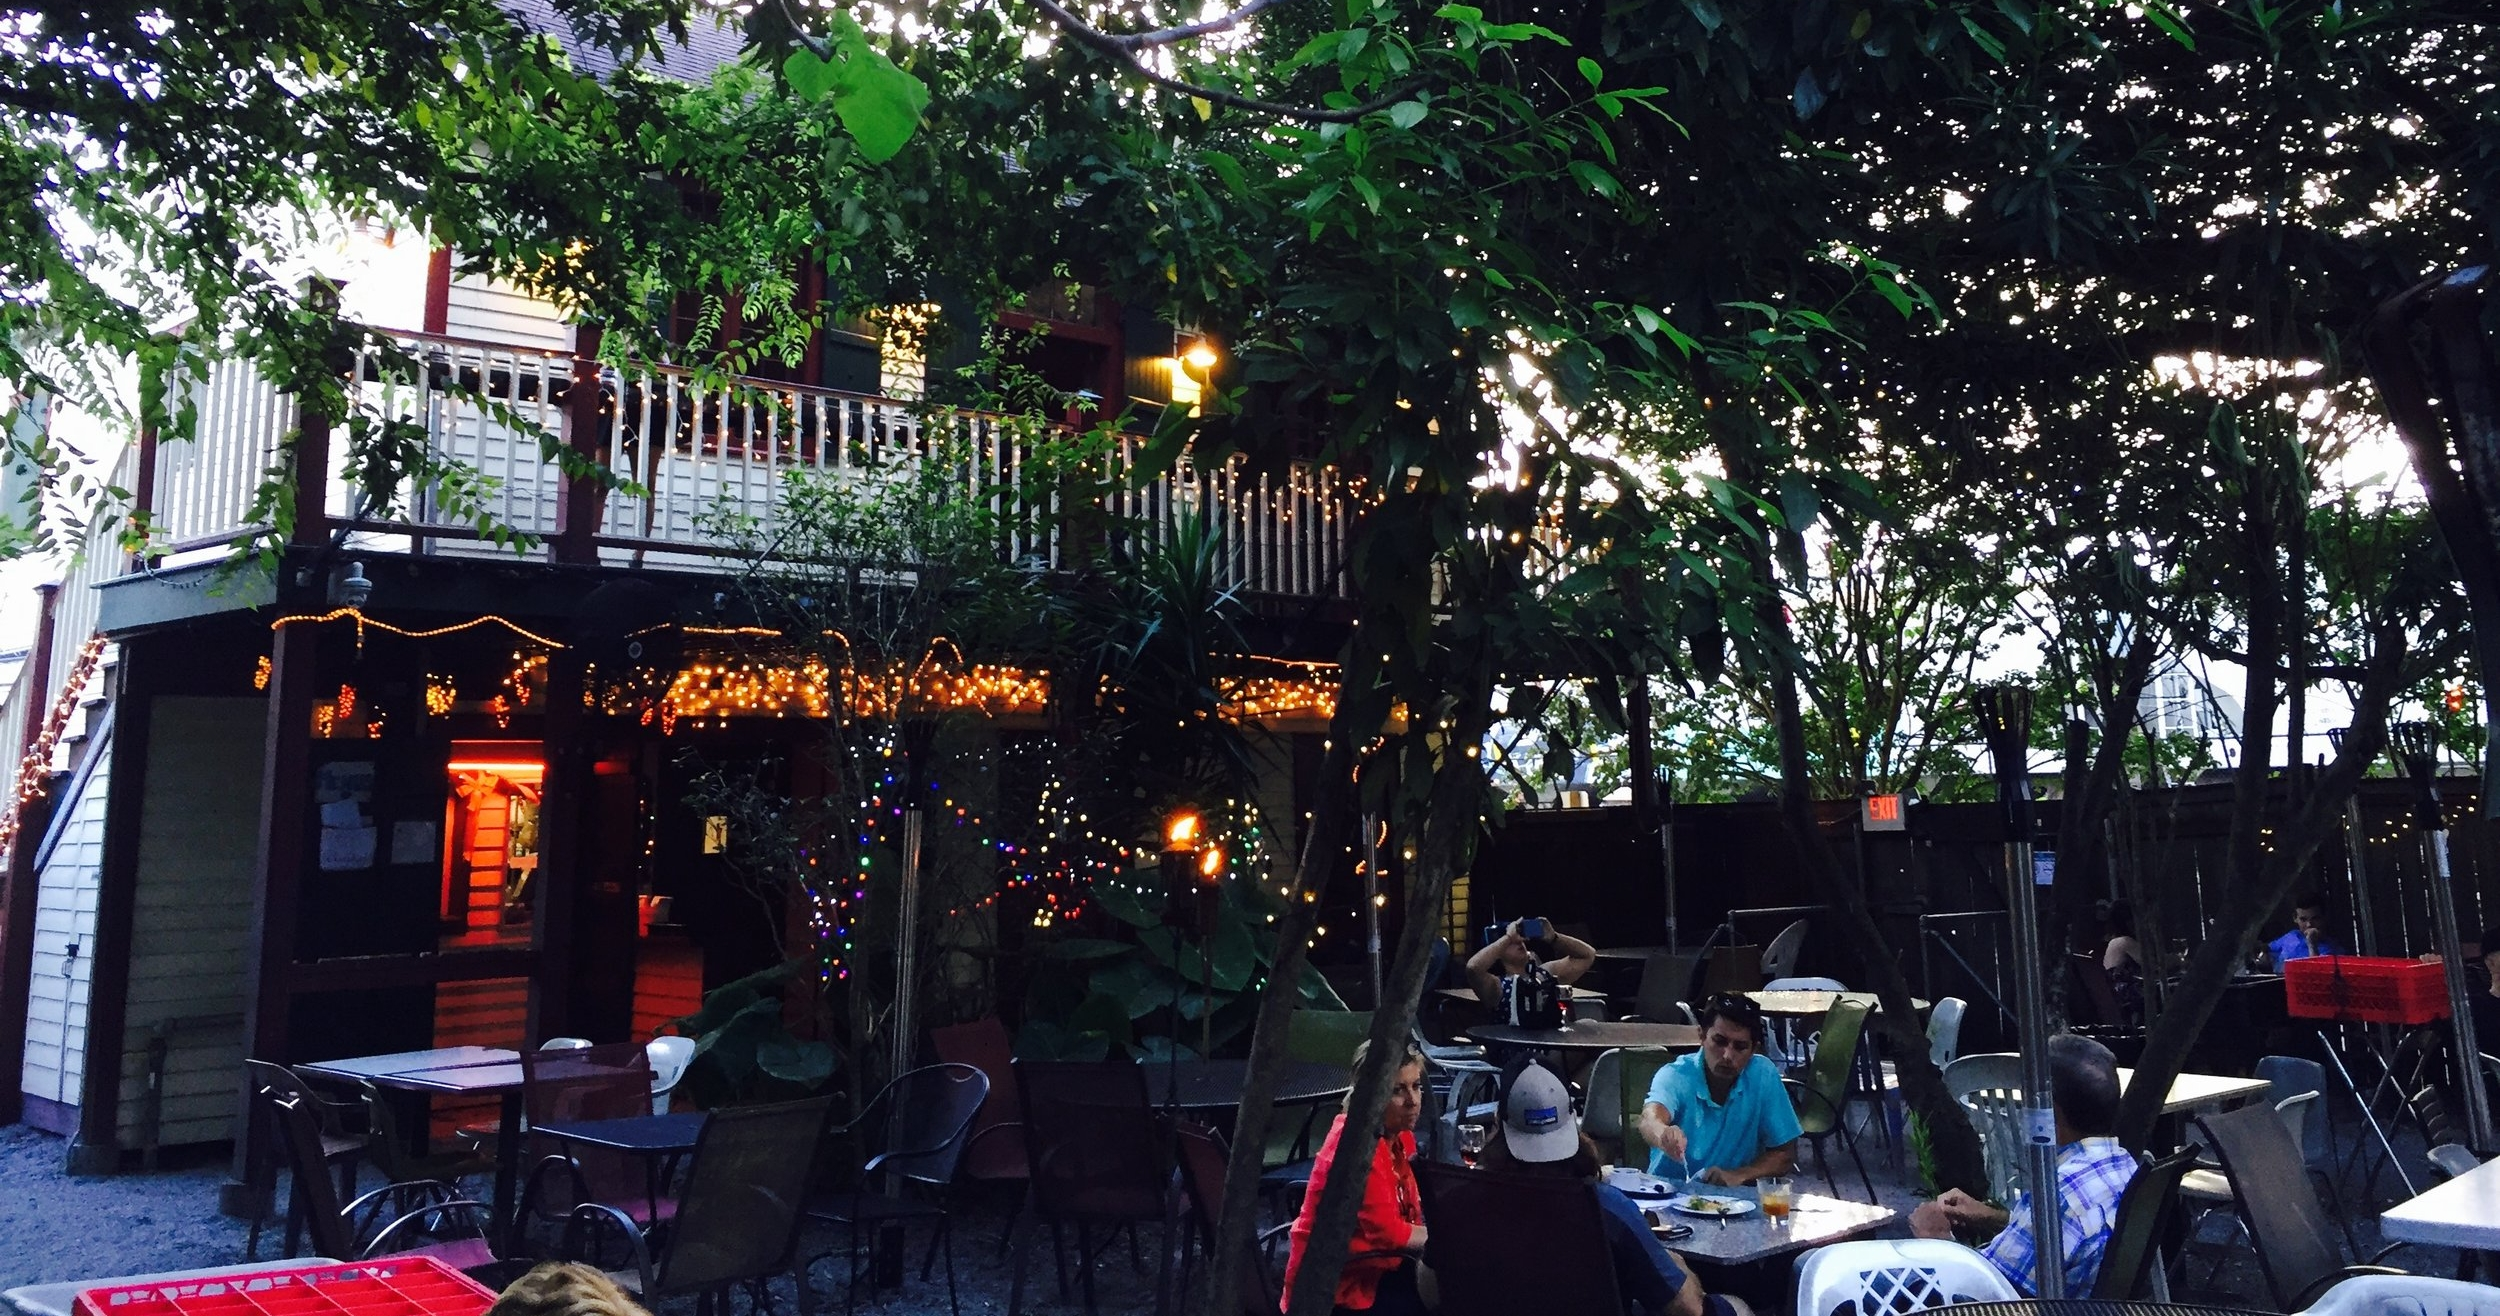 Bacchanal wine bar in the Bywater of New Orleans.